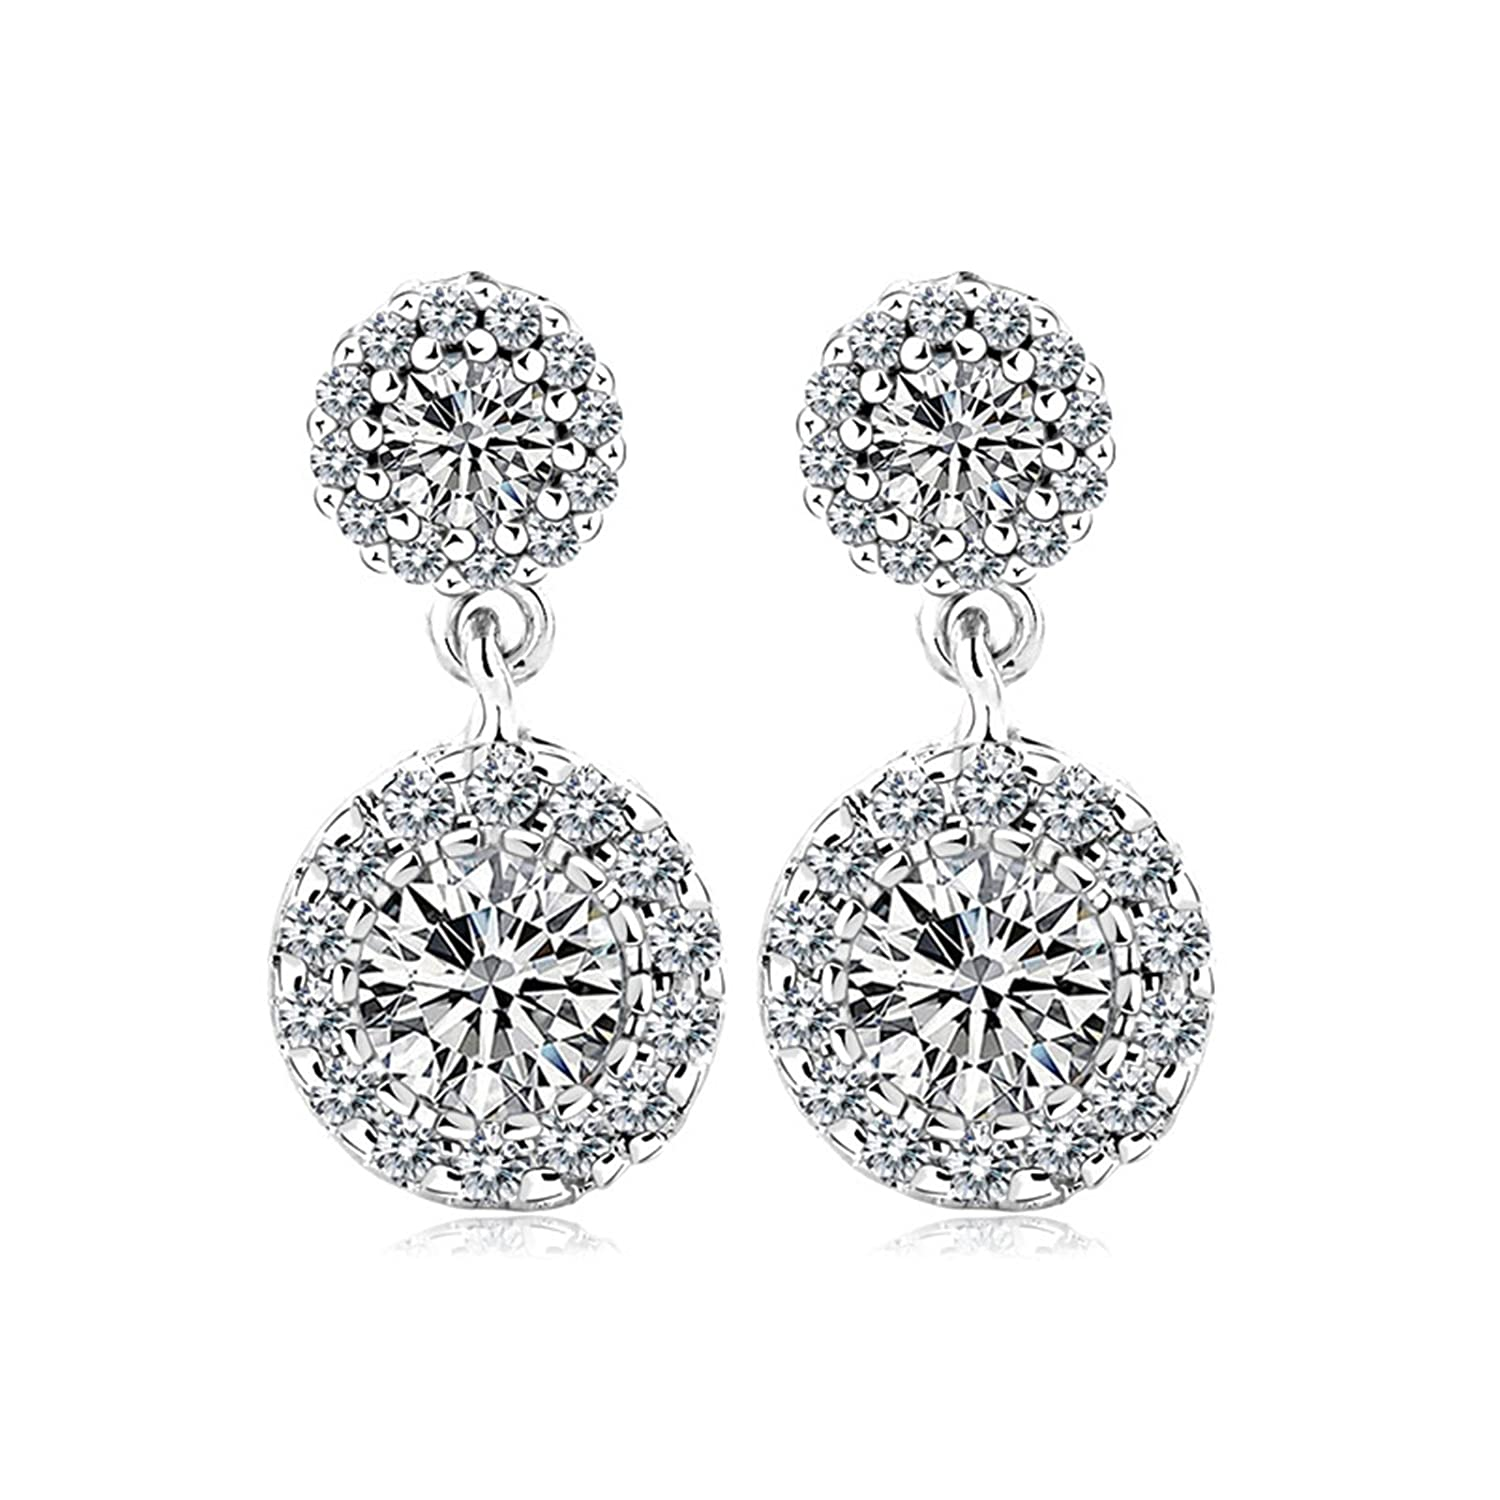 Beydodo Gold Plated Earrings Stud for Womens White Cubic Ziconia Earrings Double Circle Round Shape